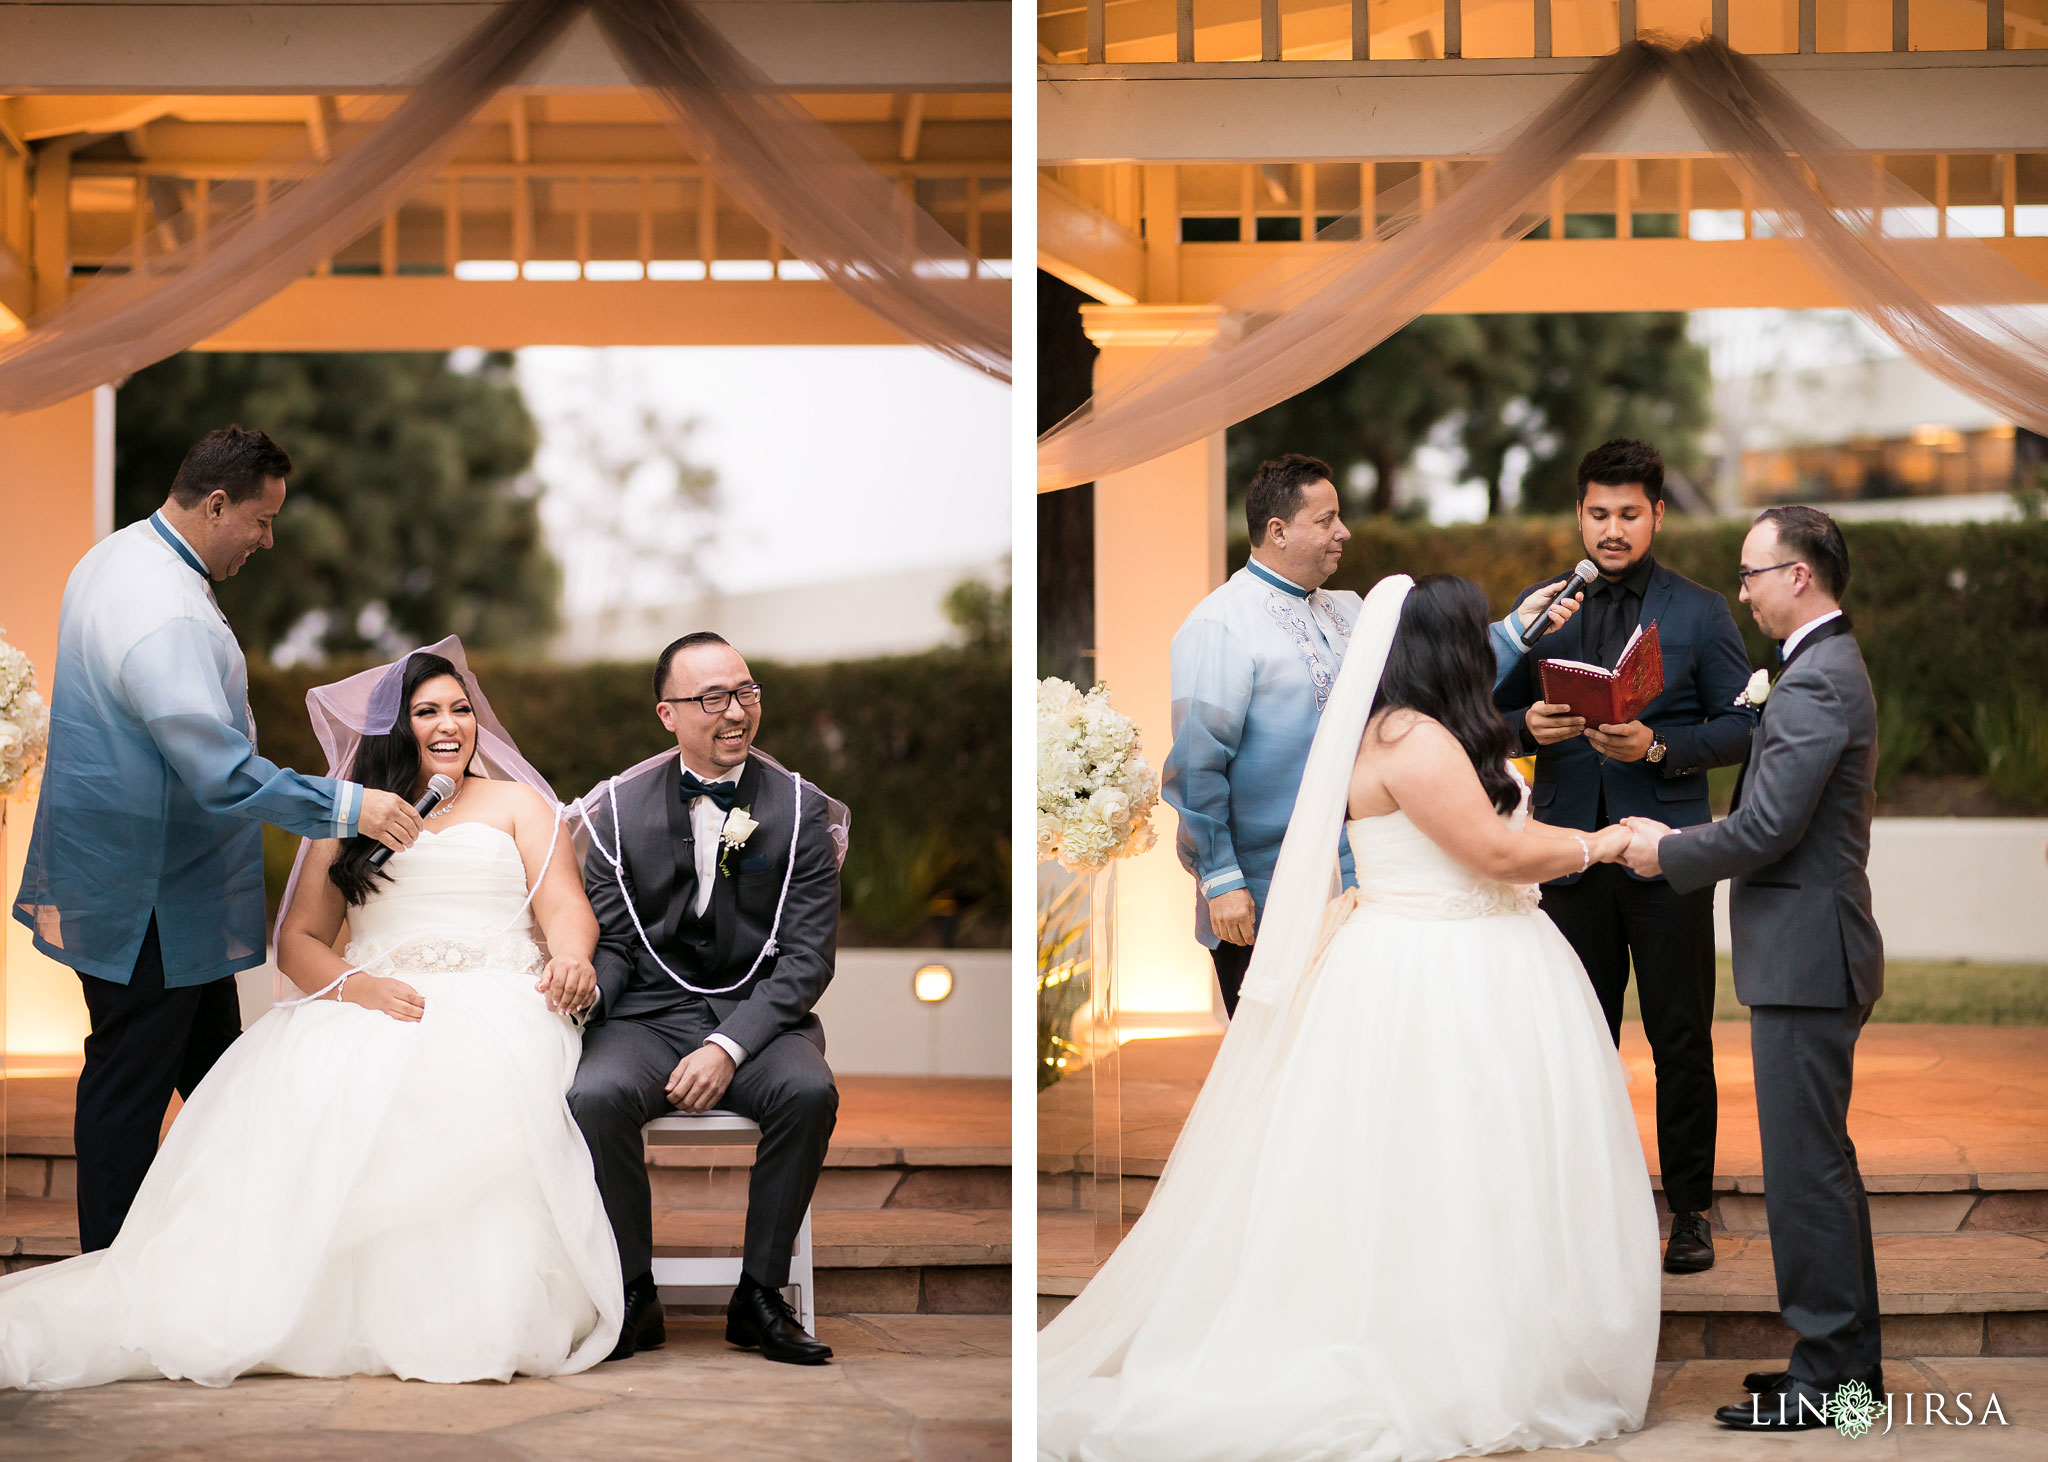 23 turnip rose promenade orange county wedding ceremony photography